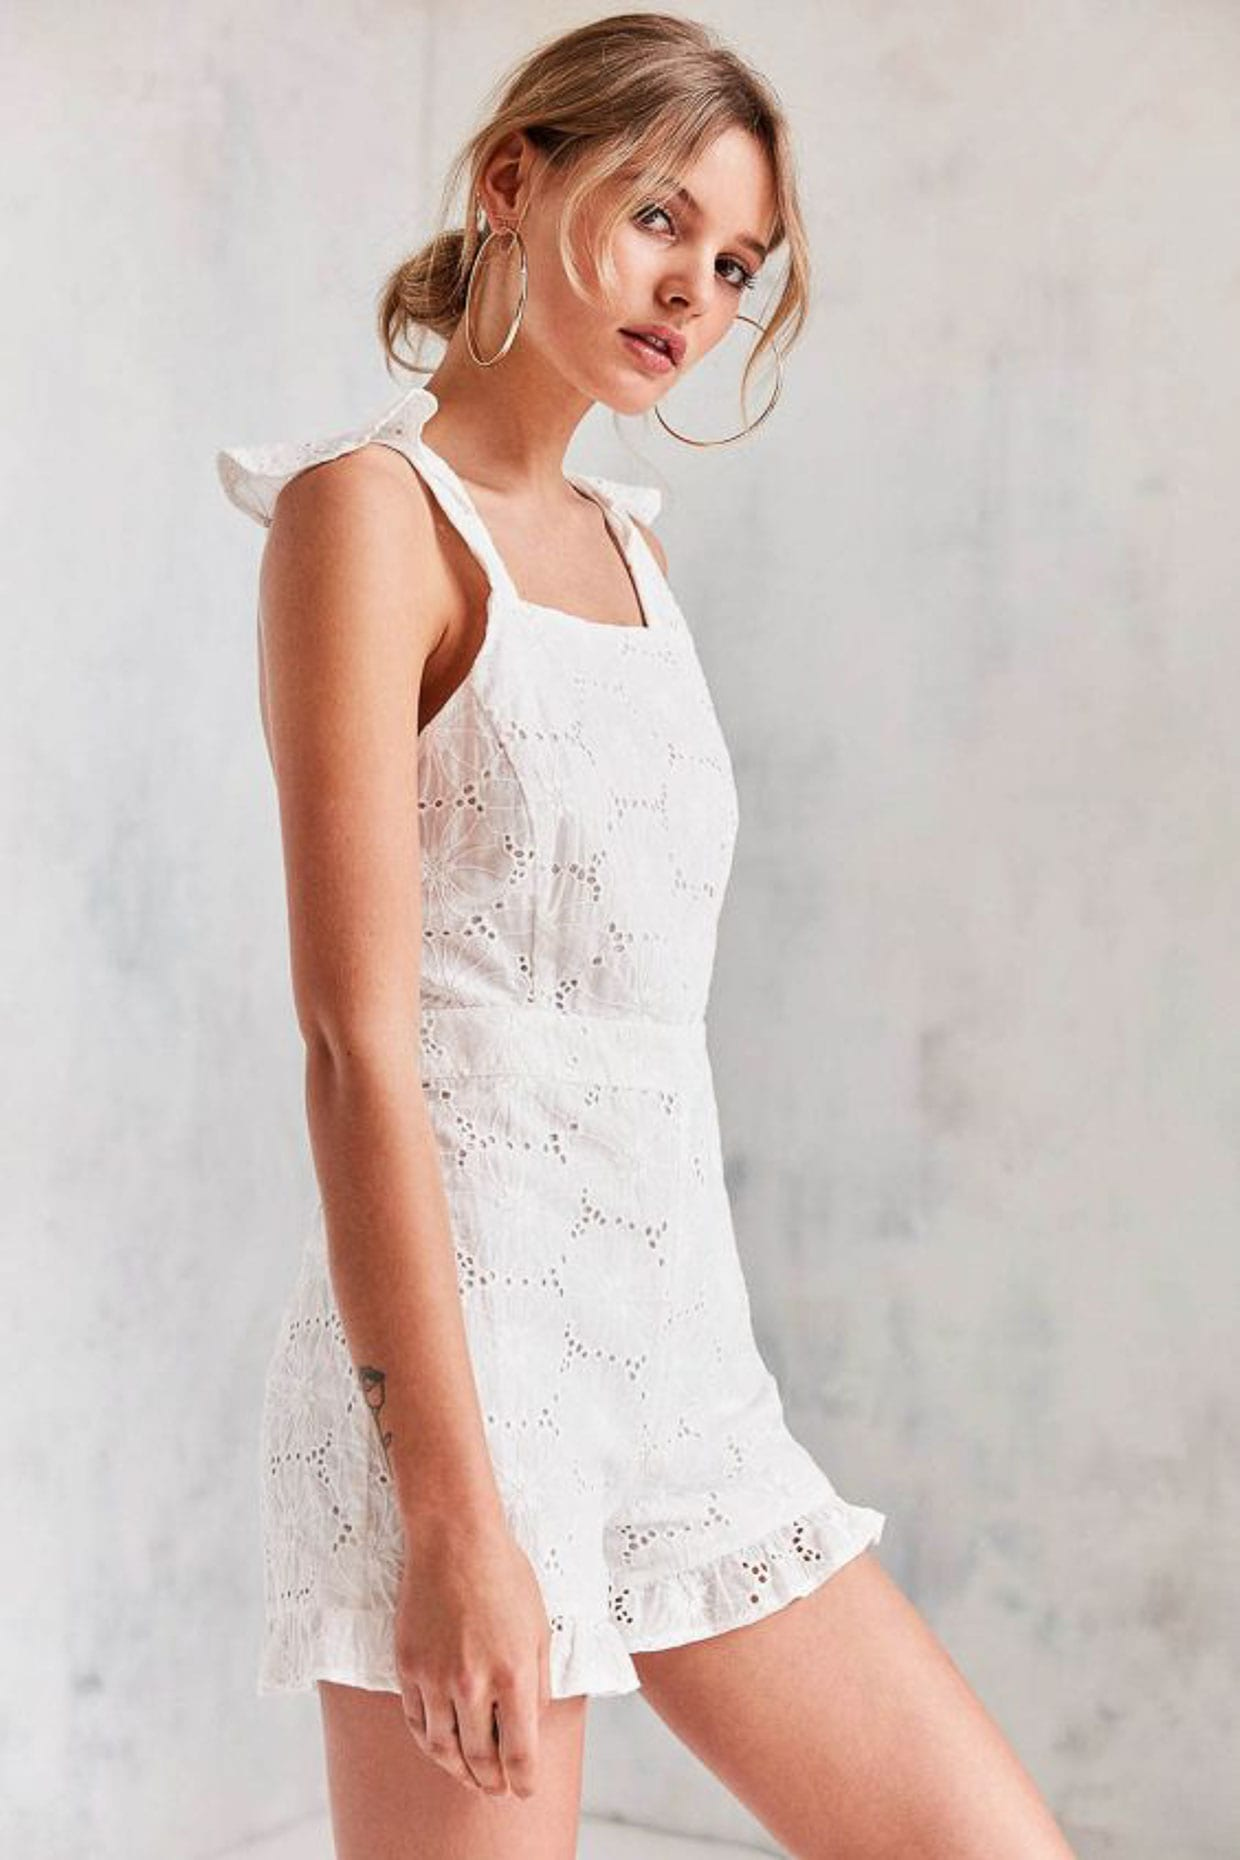 379d02954d Urban Outfitters Spring Style - Weekly Weakness - Poor Little It Girl